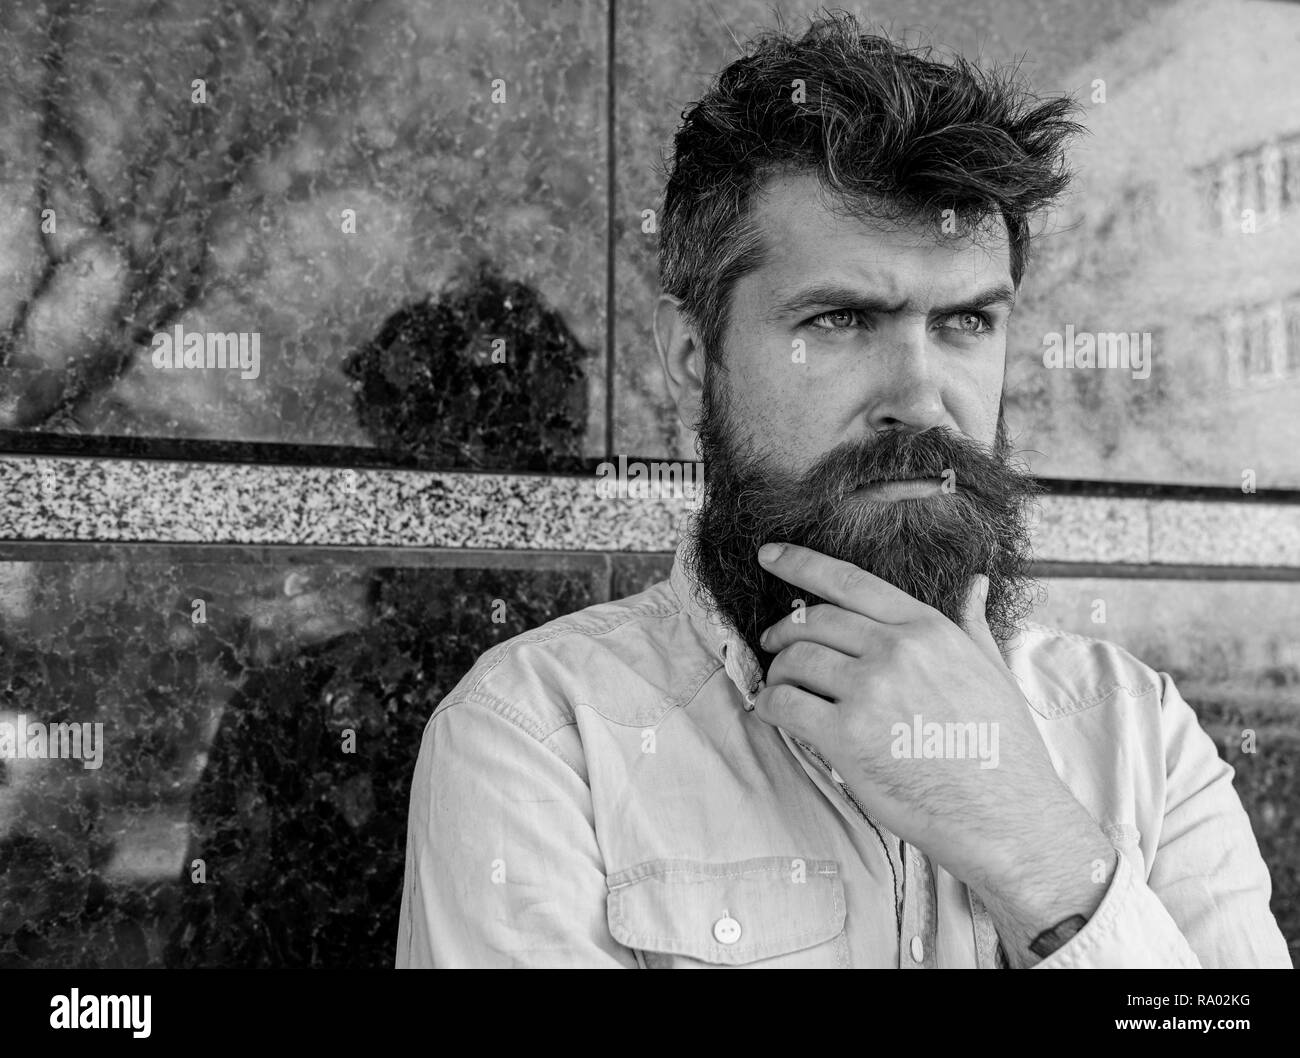 Masculinity concept. Hipster with tousled hair touches beard while looking into distance. Guy looks suspicious. Man with beard and mustache on thoughtful, pensive face, black marble background. - Stock Image